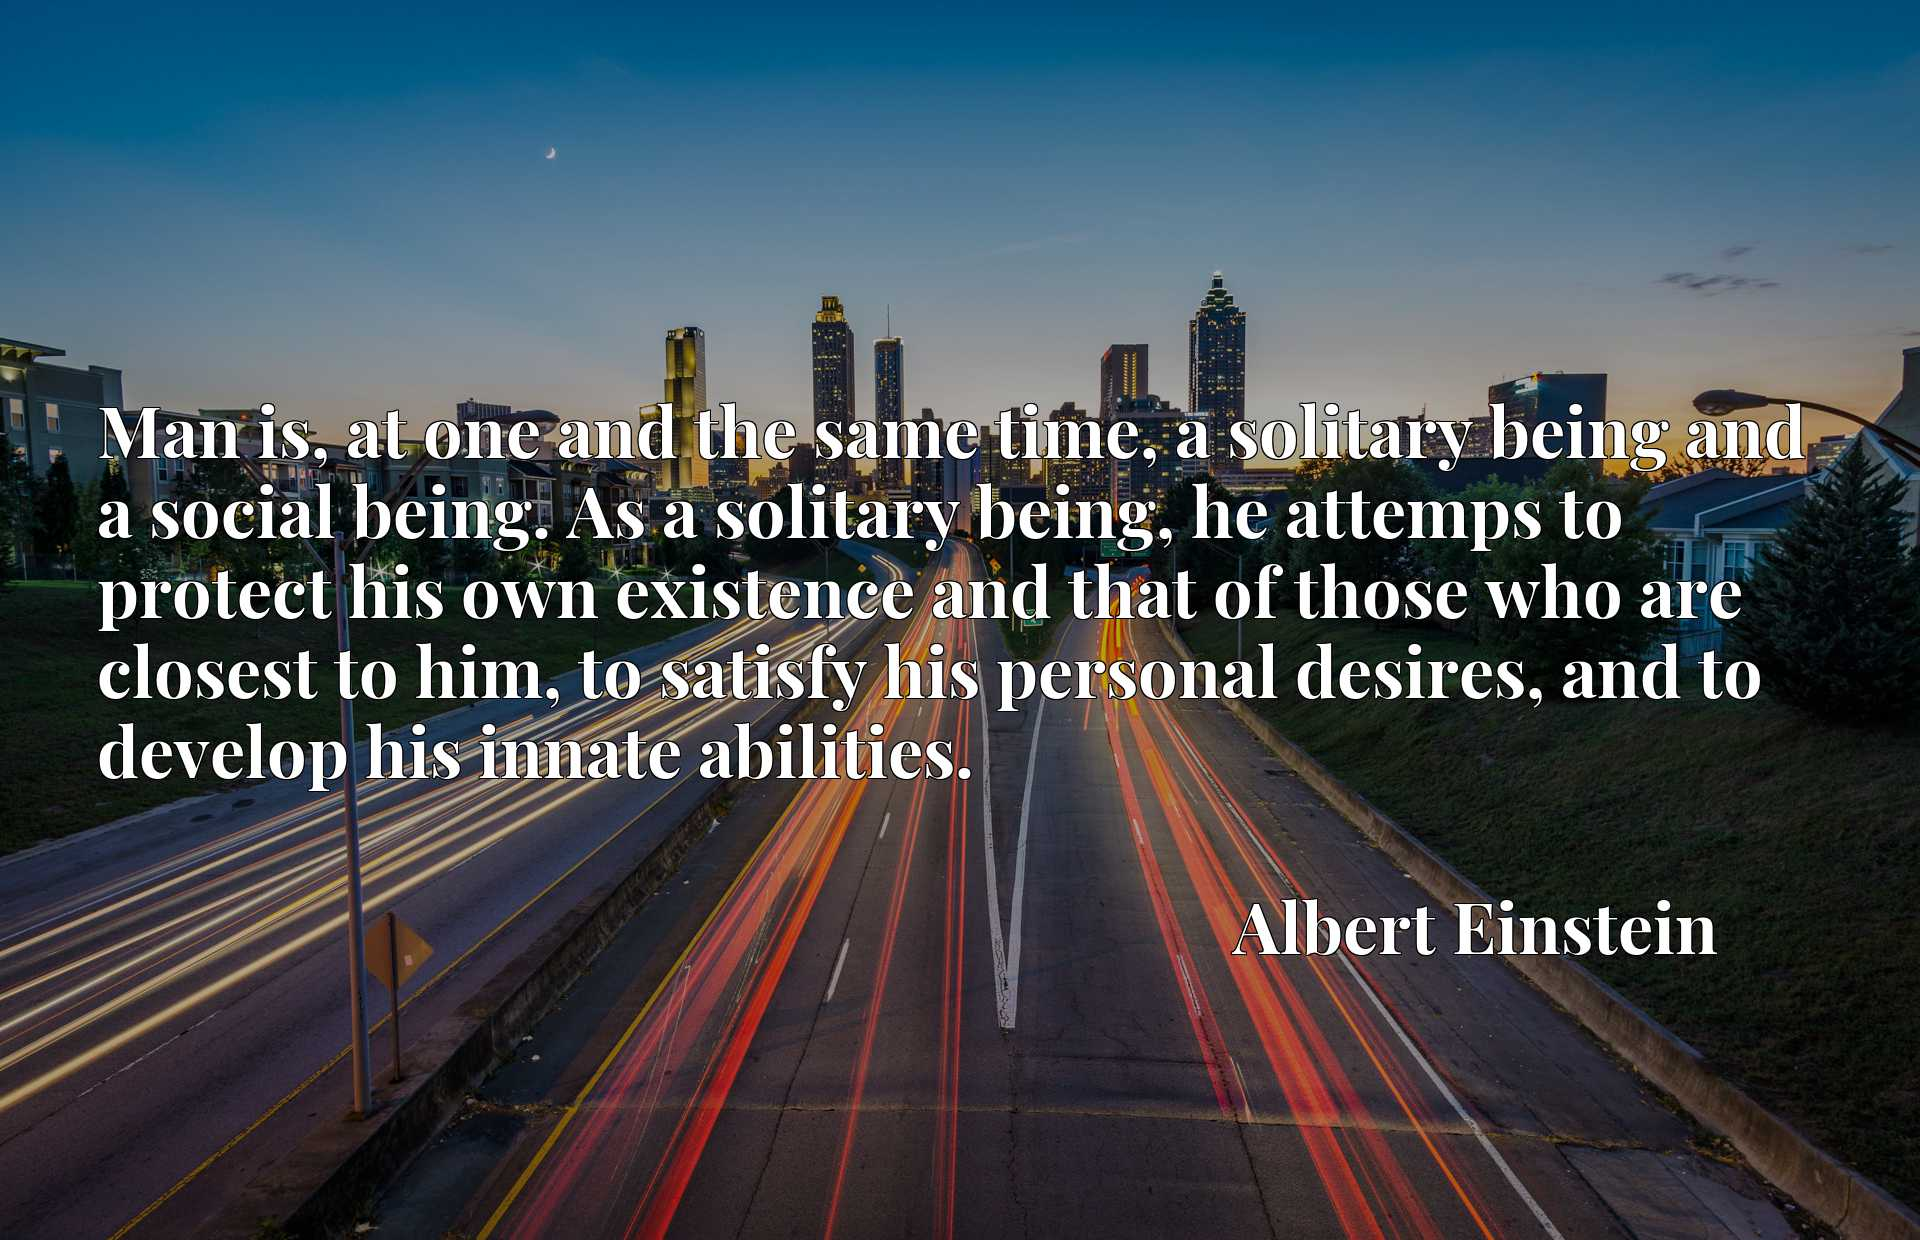 Man is, at one and the same time, a solitary being and a social being. As a solitary being, he attemps to protect his own existence and that of those who are closest to him, to satisfy his personal desires, and to develop his innate abilities.